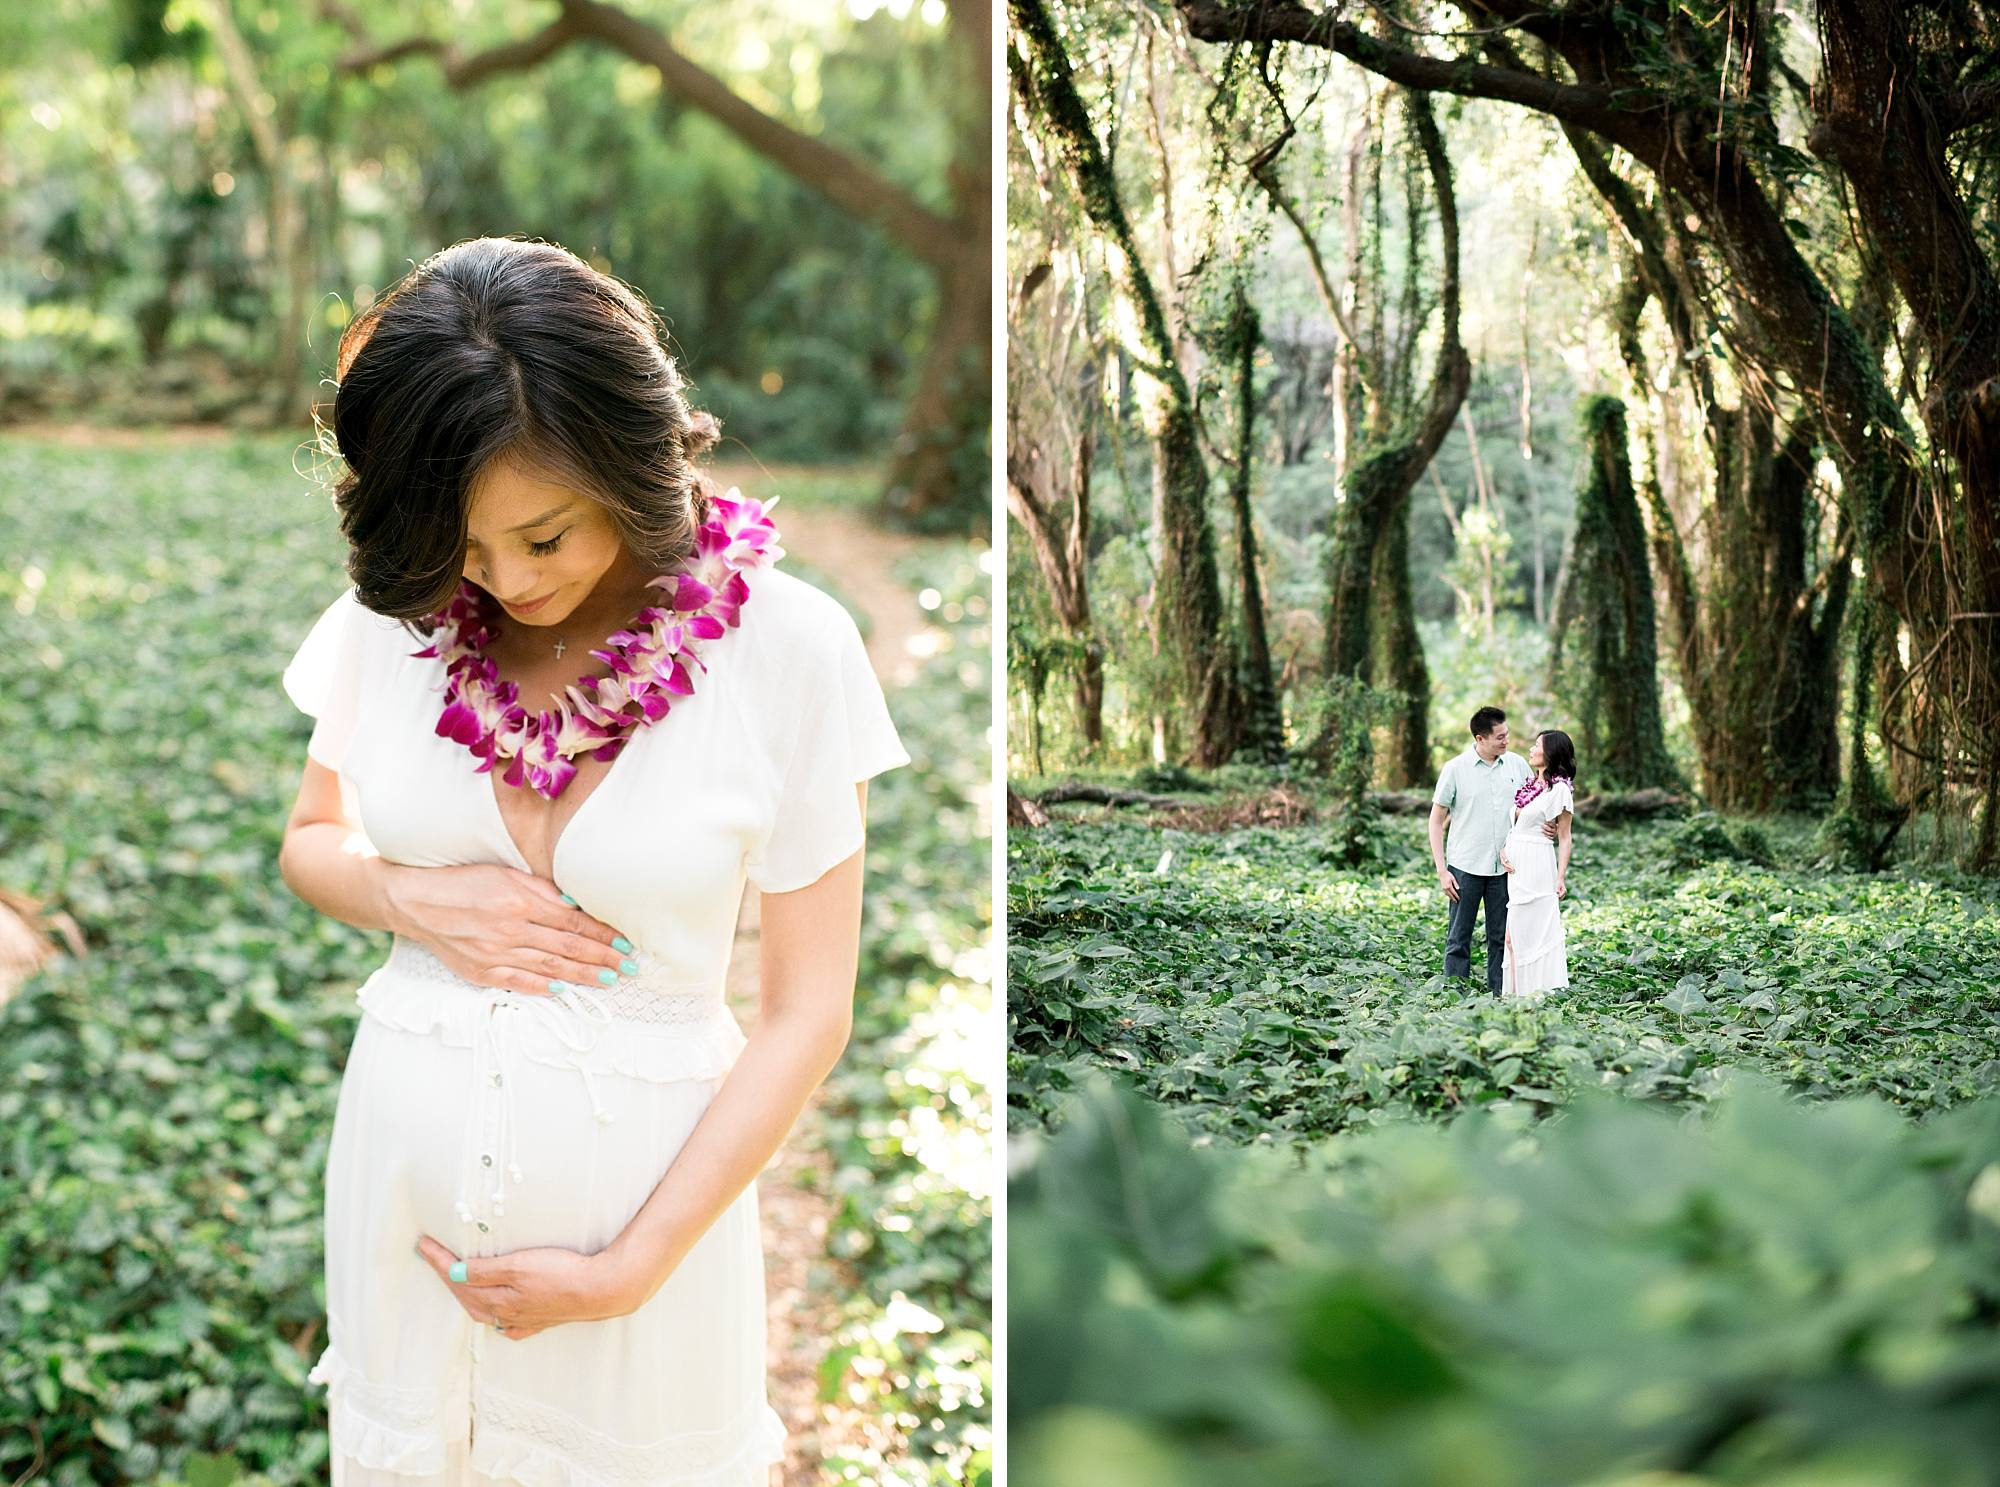 Maternity photo of woman looking down at her belly and one of husband and wife embracing